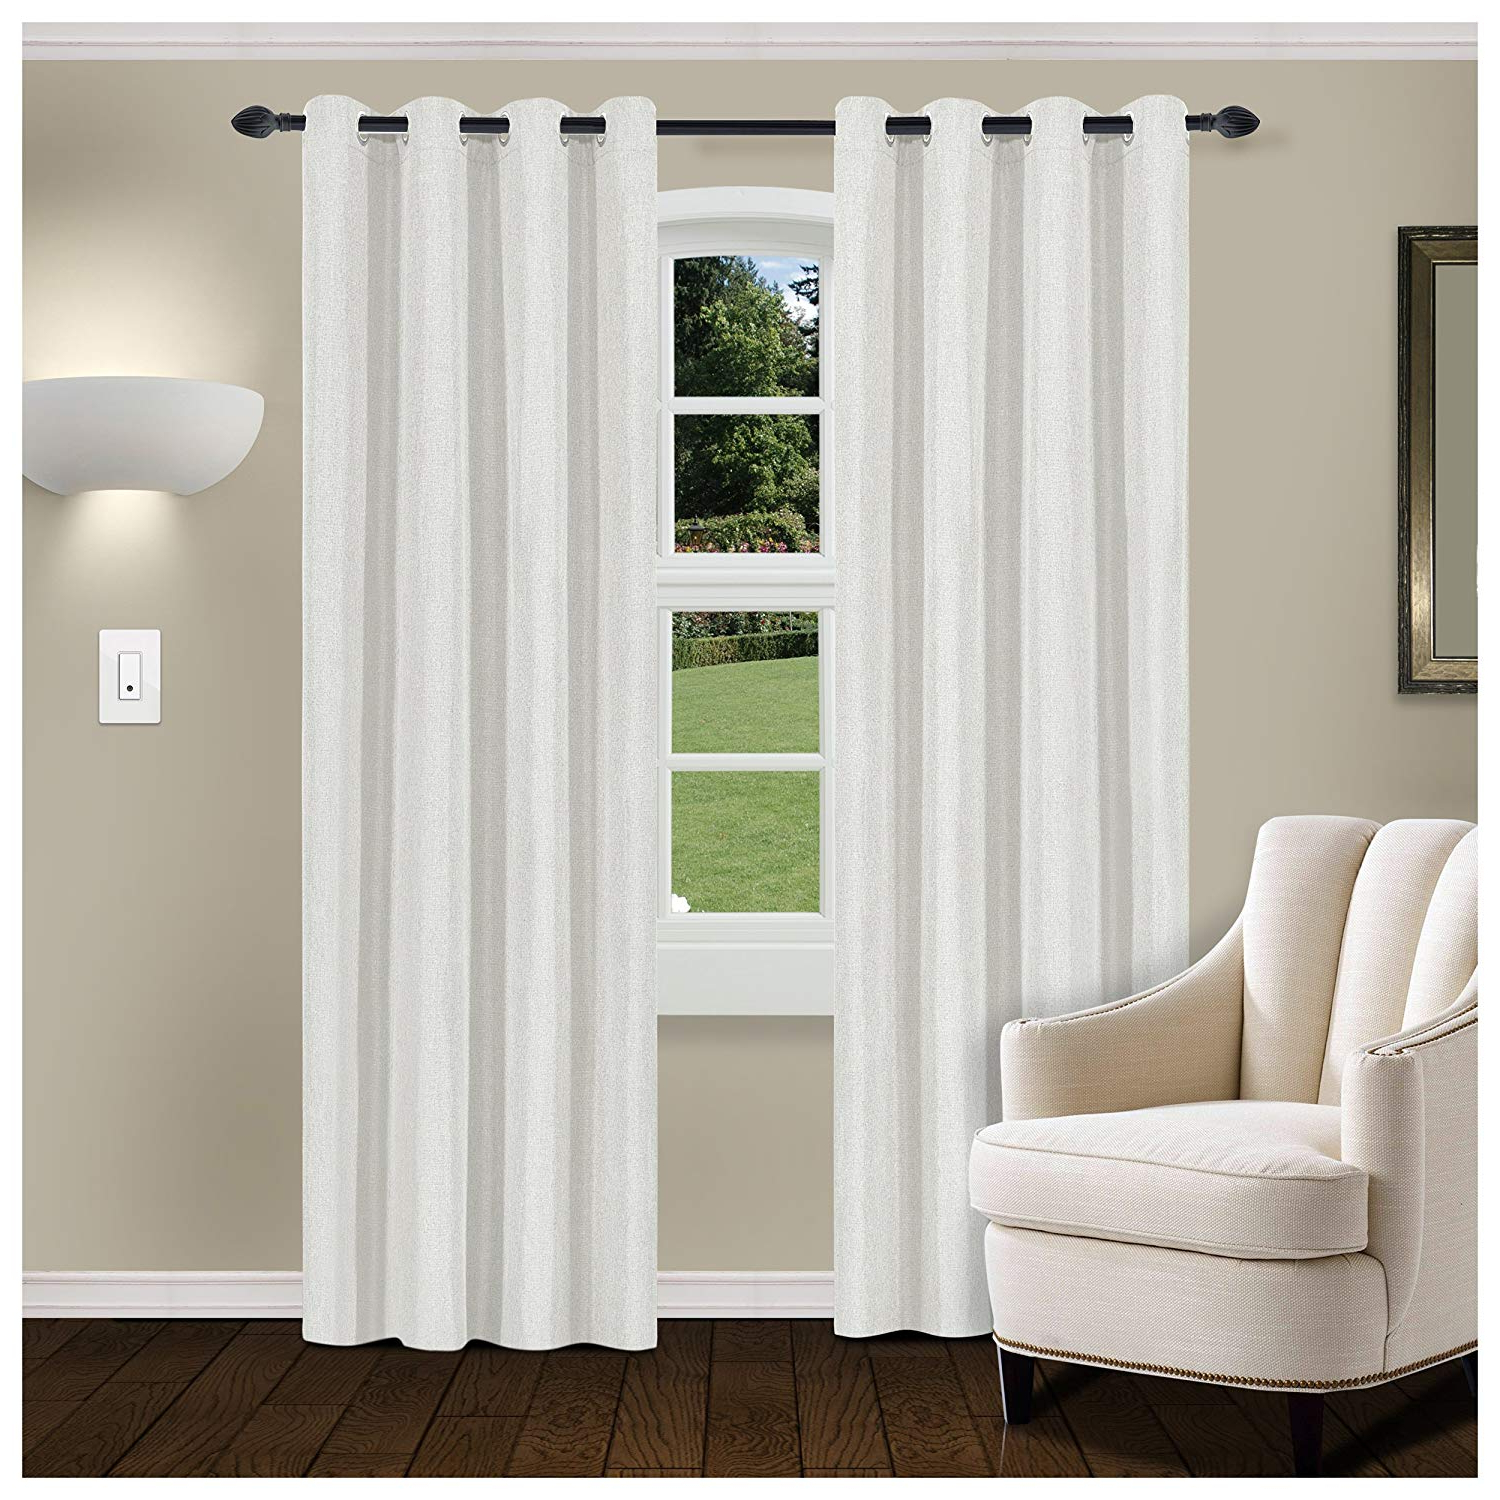 Famous Thermal Insulated Blackout Curtain Panel Pairs With Regard To Superior Linen Textured Blackout Curtain Set Of 2, Thermal Insulated Panel  Pair With Grommet Top Header, Classic Natural Look Room Darkening Drapes, (View 5 of 20)